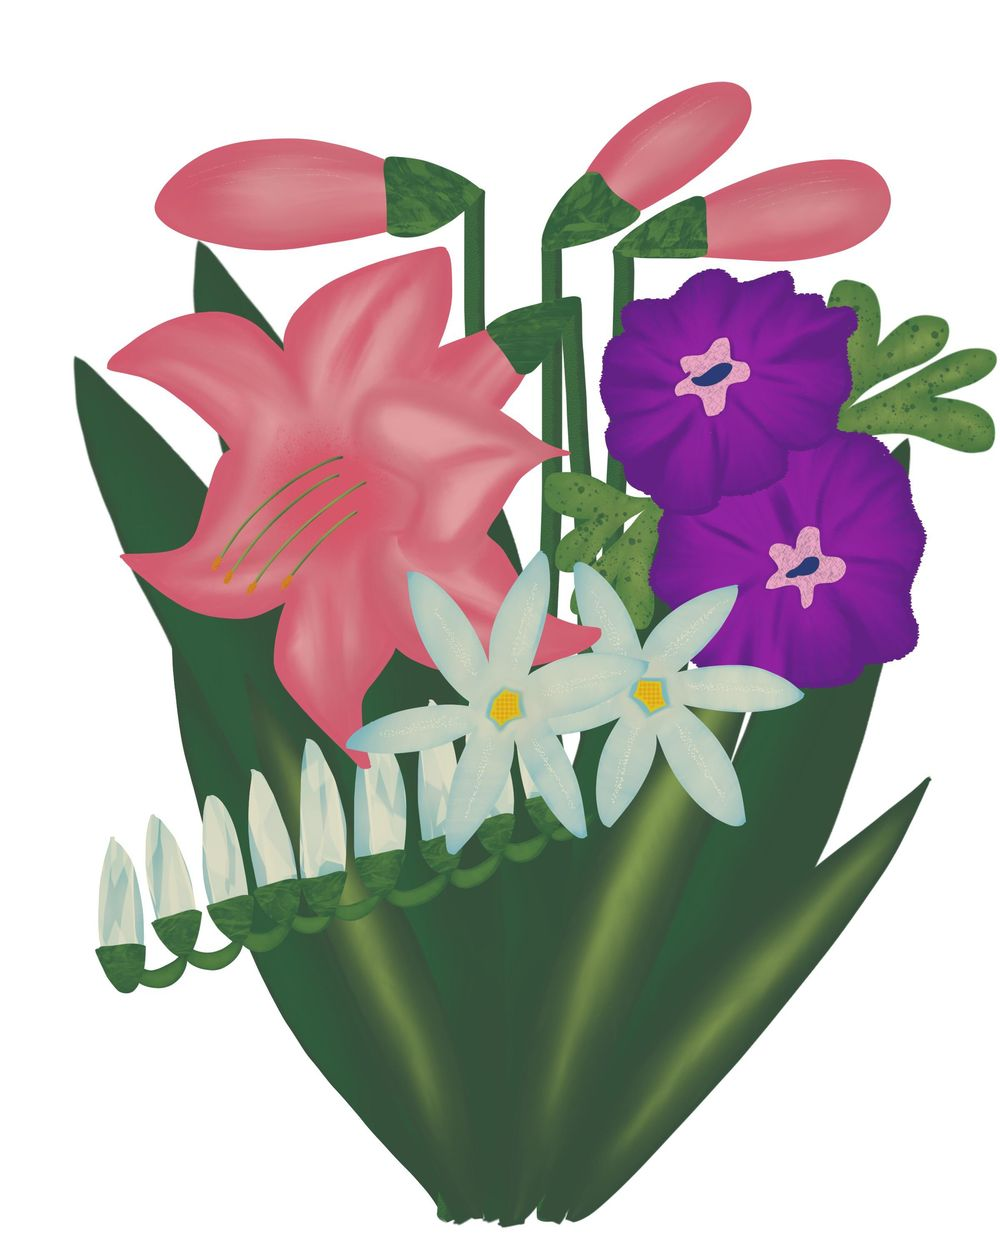 Mandy's Flowers - image 1 - student project